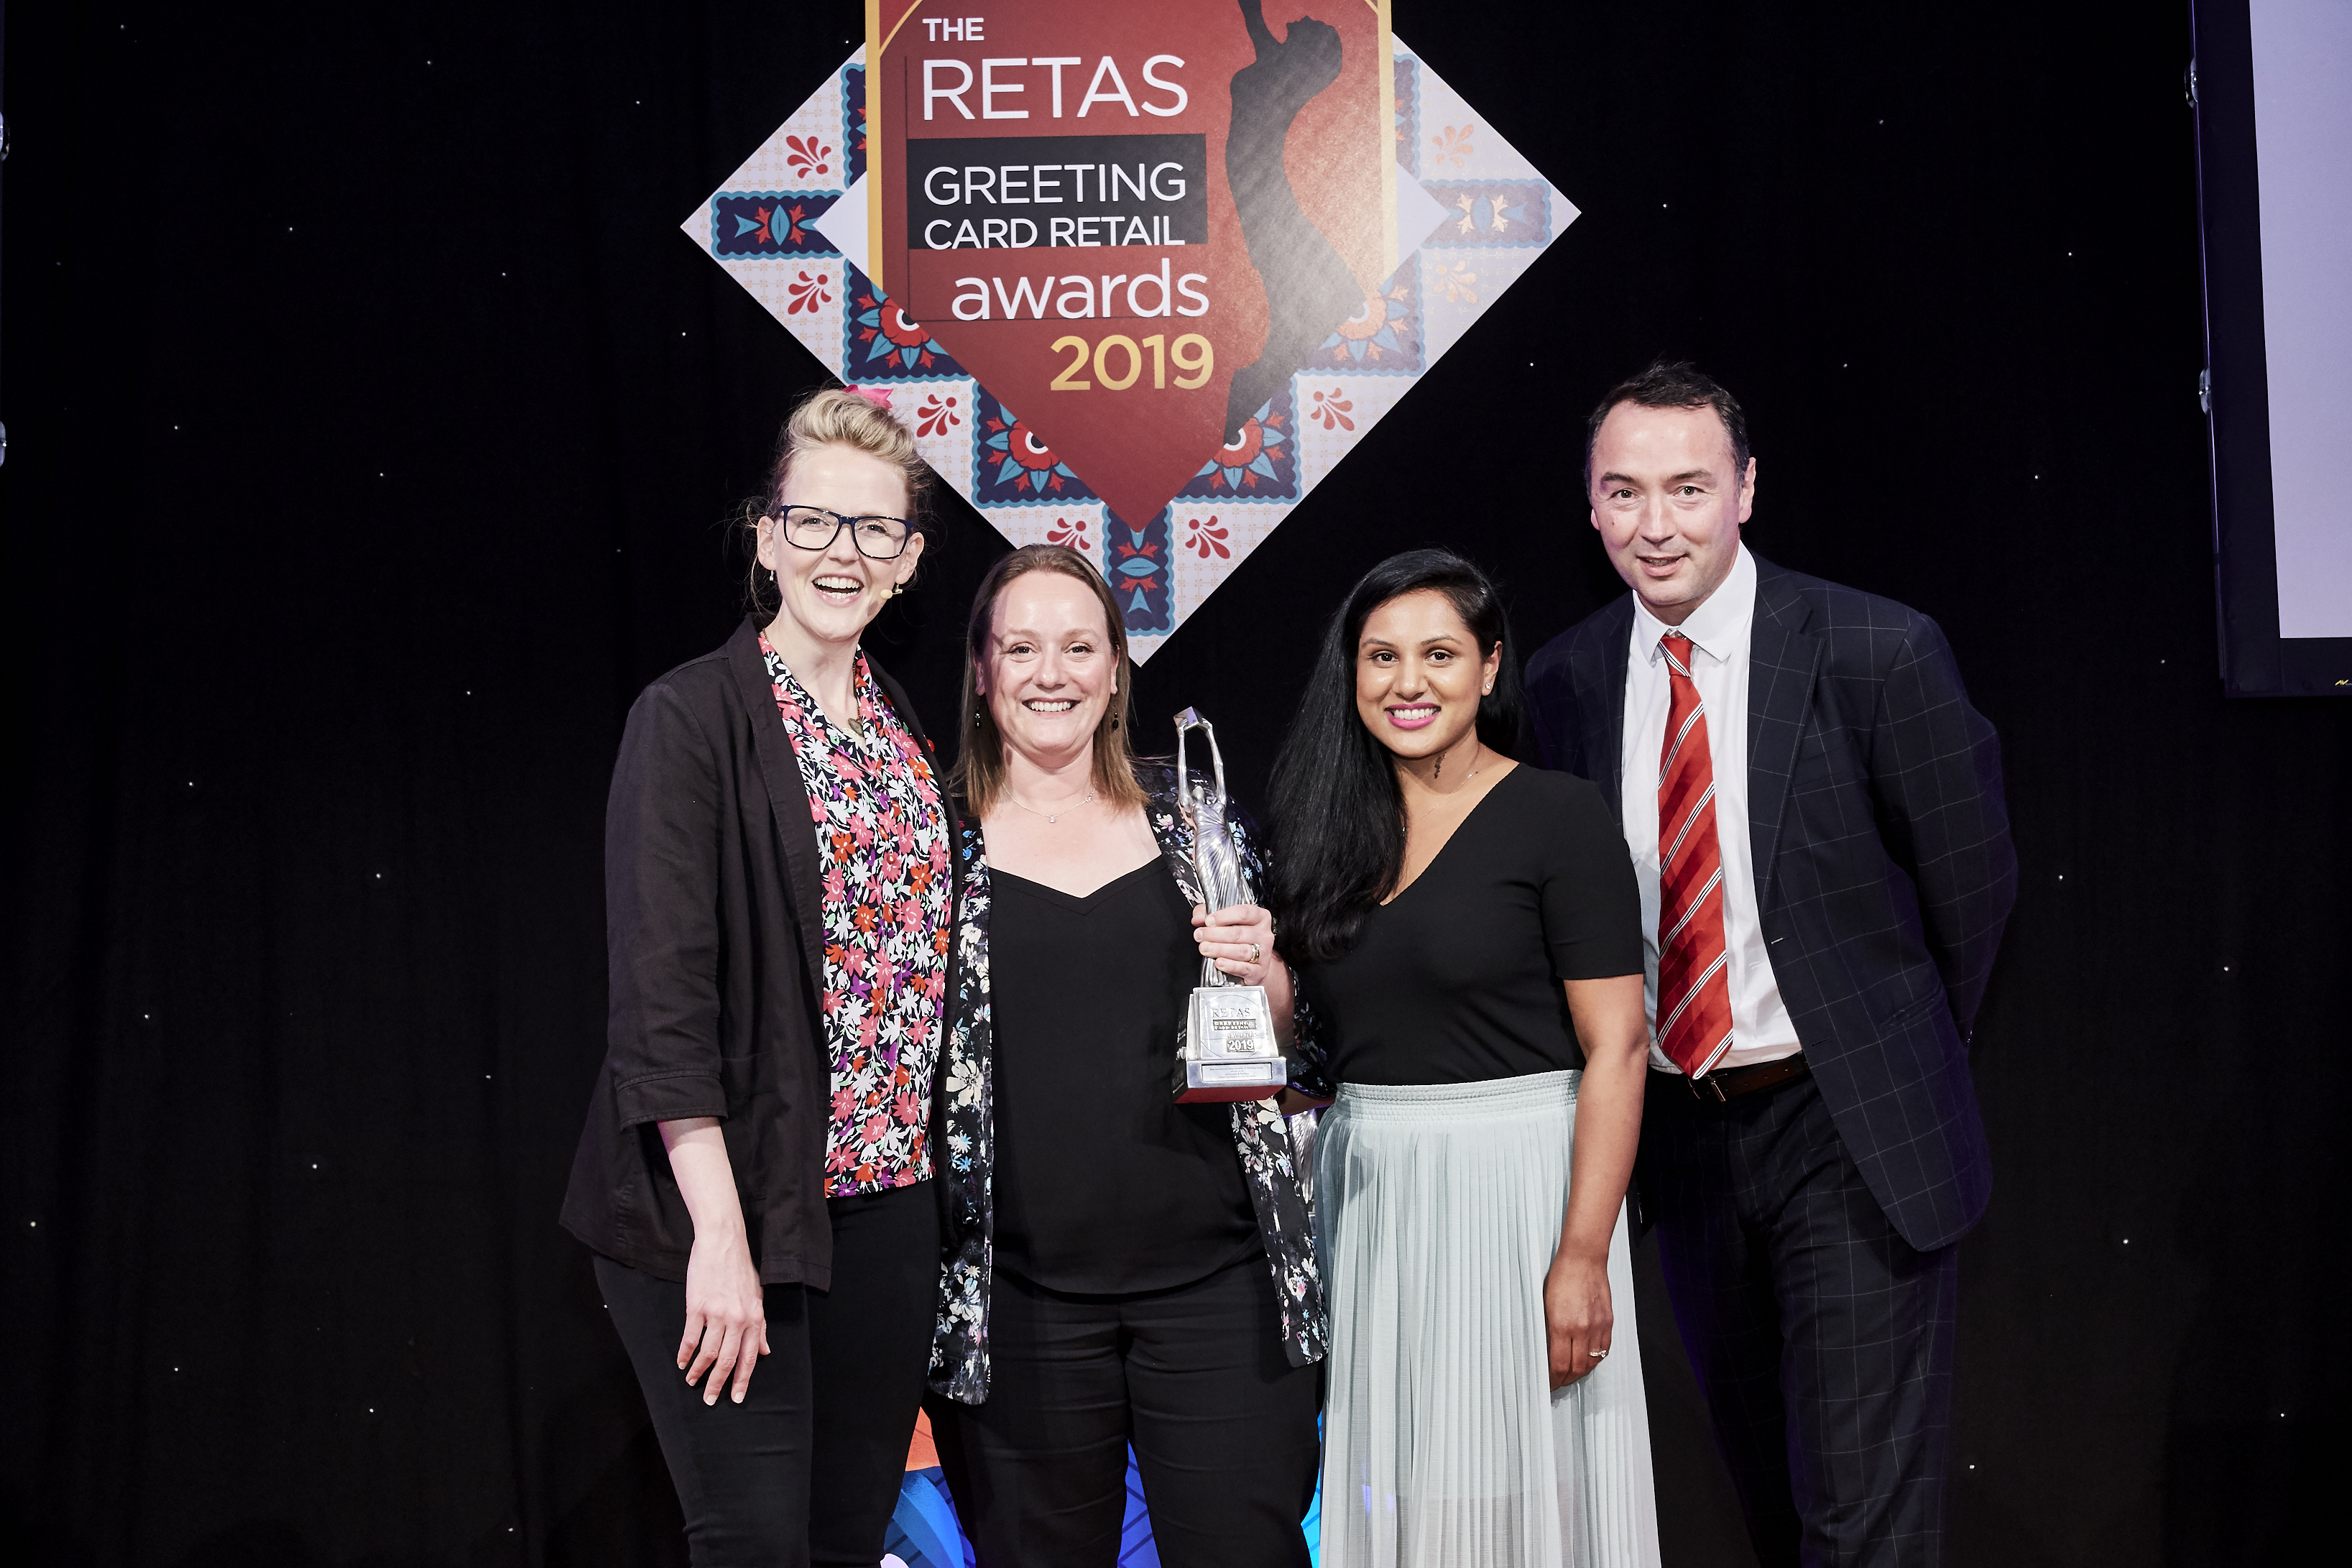 Above: John Lewis & Partners' buyer Lisa Rutherford (second left) and merchandiser Payal Shah were presented with the trophy by Nick Carey, managing director for Abacus Cards, the category sponsor.